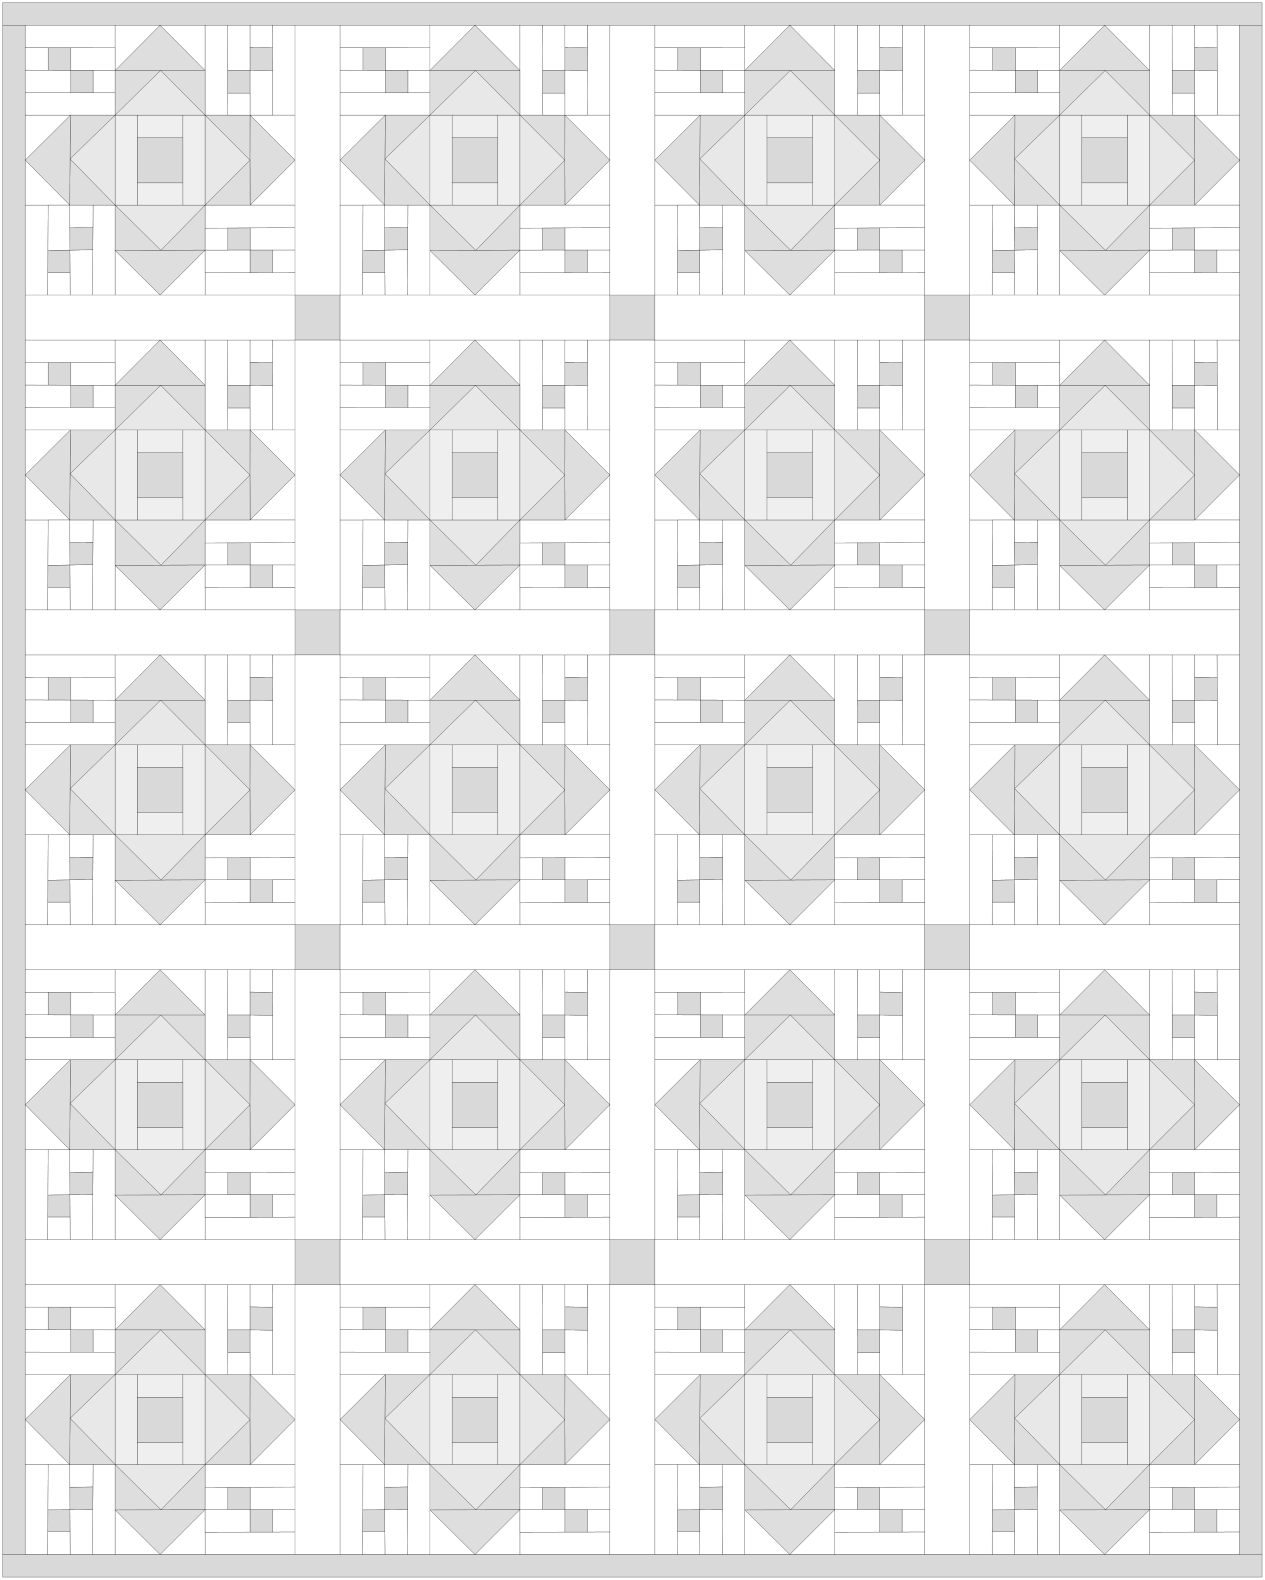 renew quilt pattern coloring page